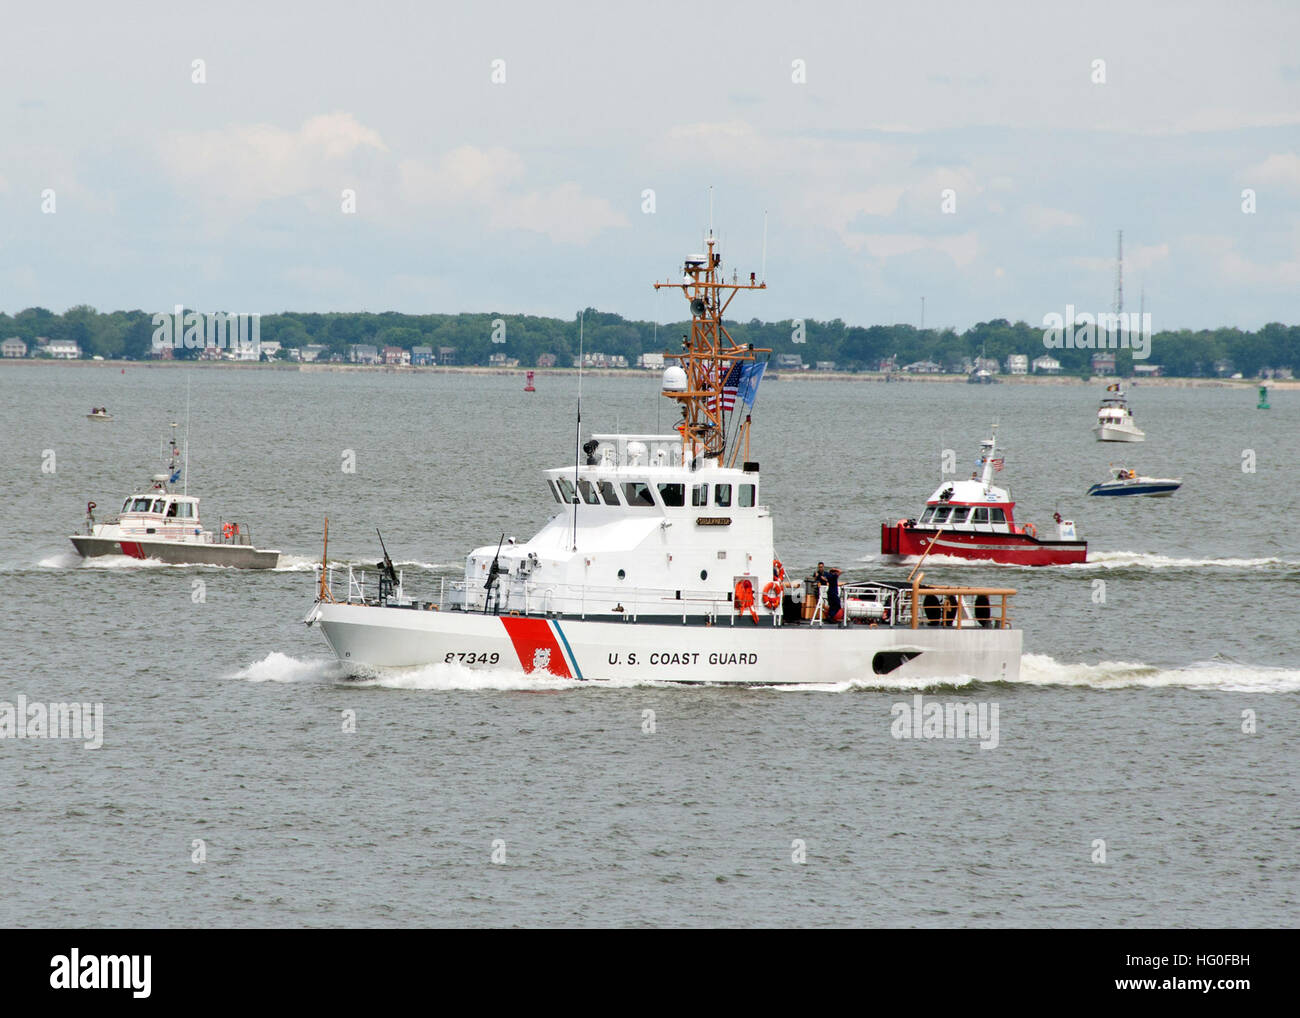 The U.S. Coast Guard cutter Shearwater (WPB-87349) transits past Naval Station Norfolk as part of the Sea and Air - Stock Image